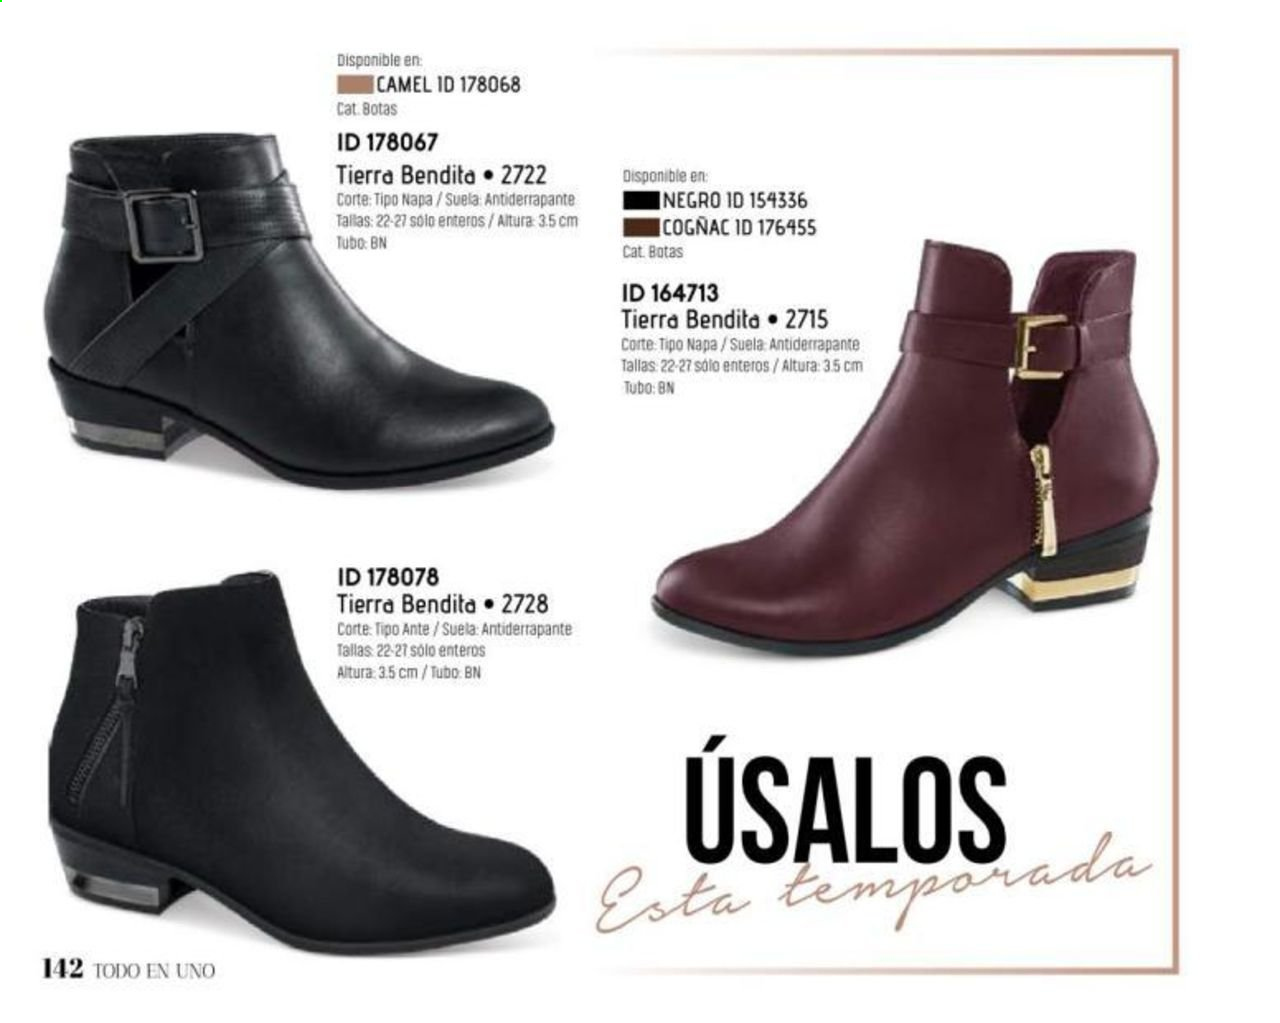 Oferta vigente Price Shoes. Página 140.